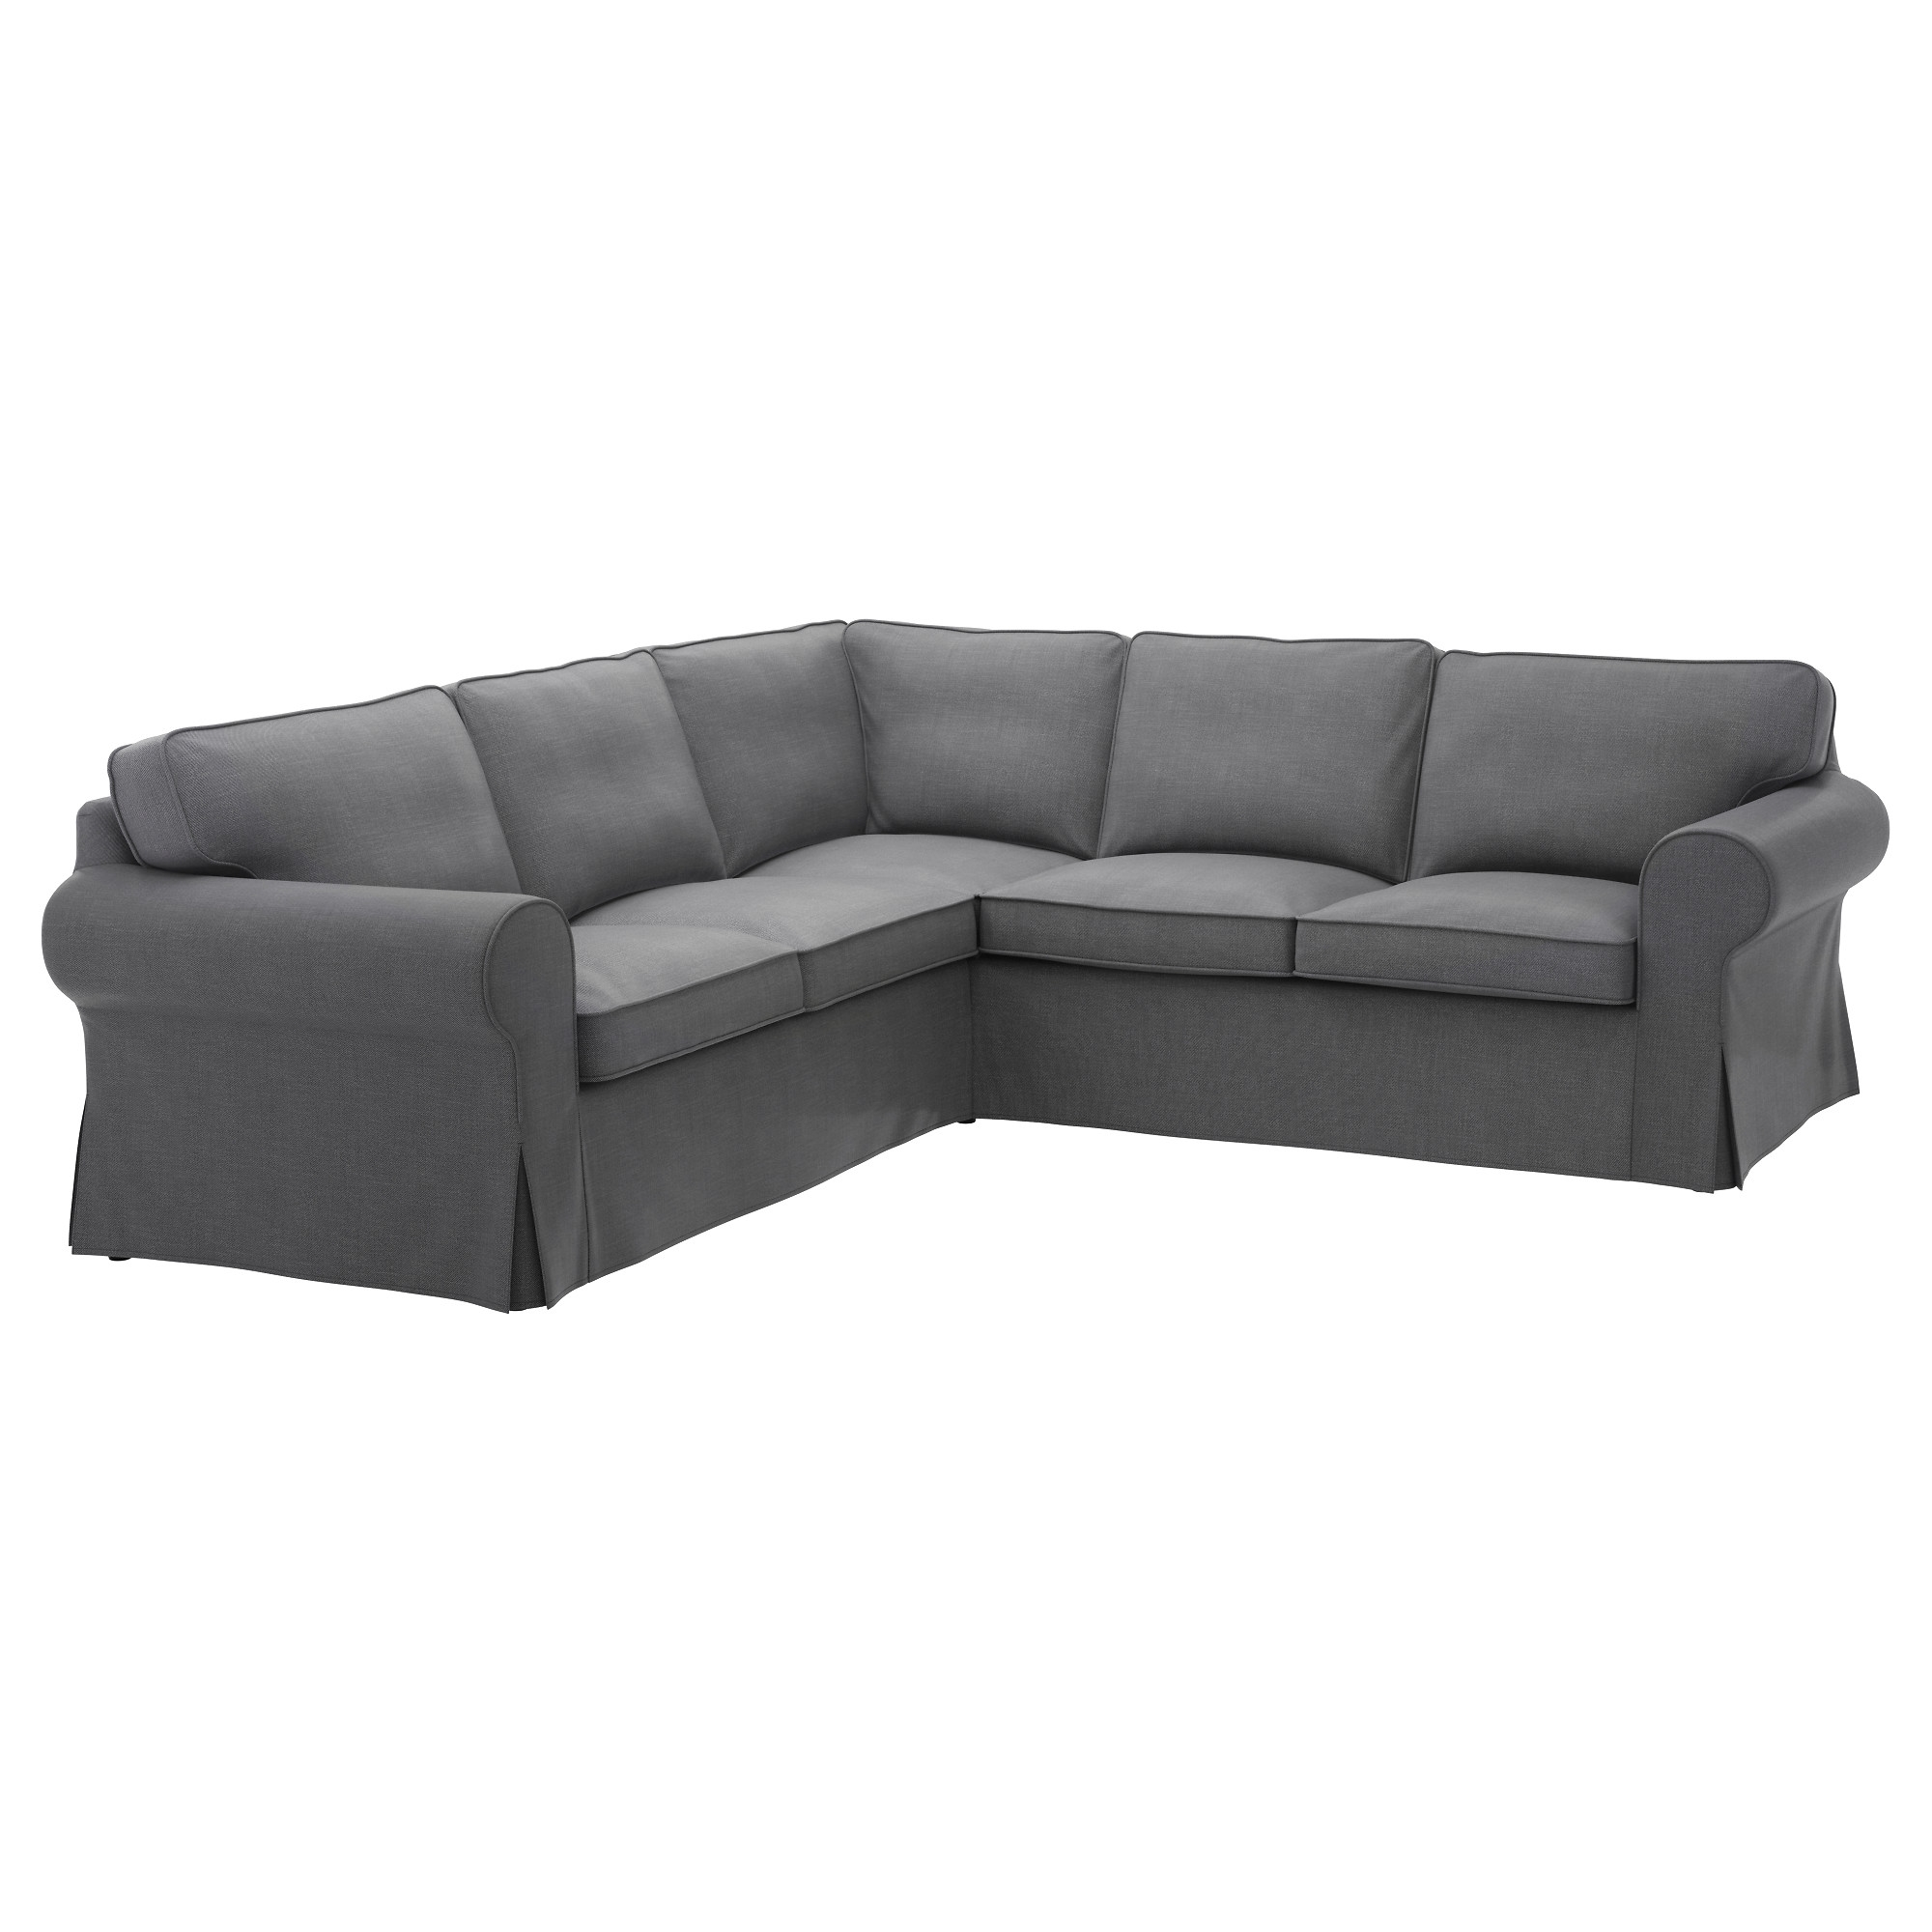 Fabric Sofas Modern Contemporary Ikea Within Fabric Sofas (Image 7 of 15)